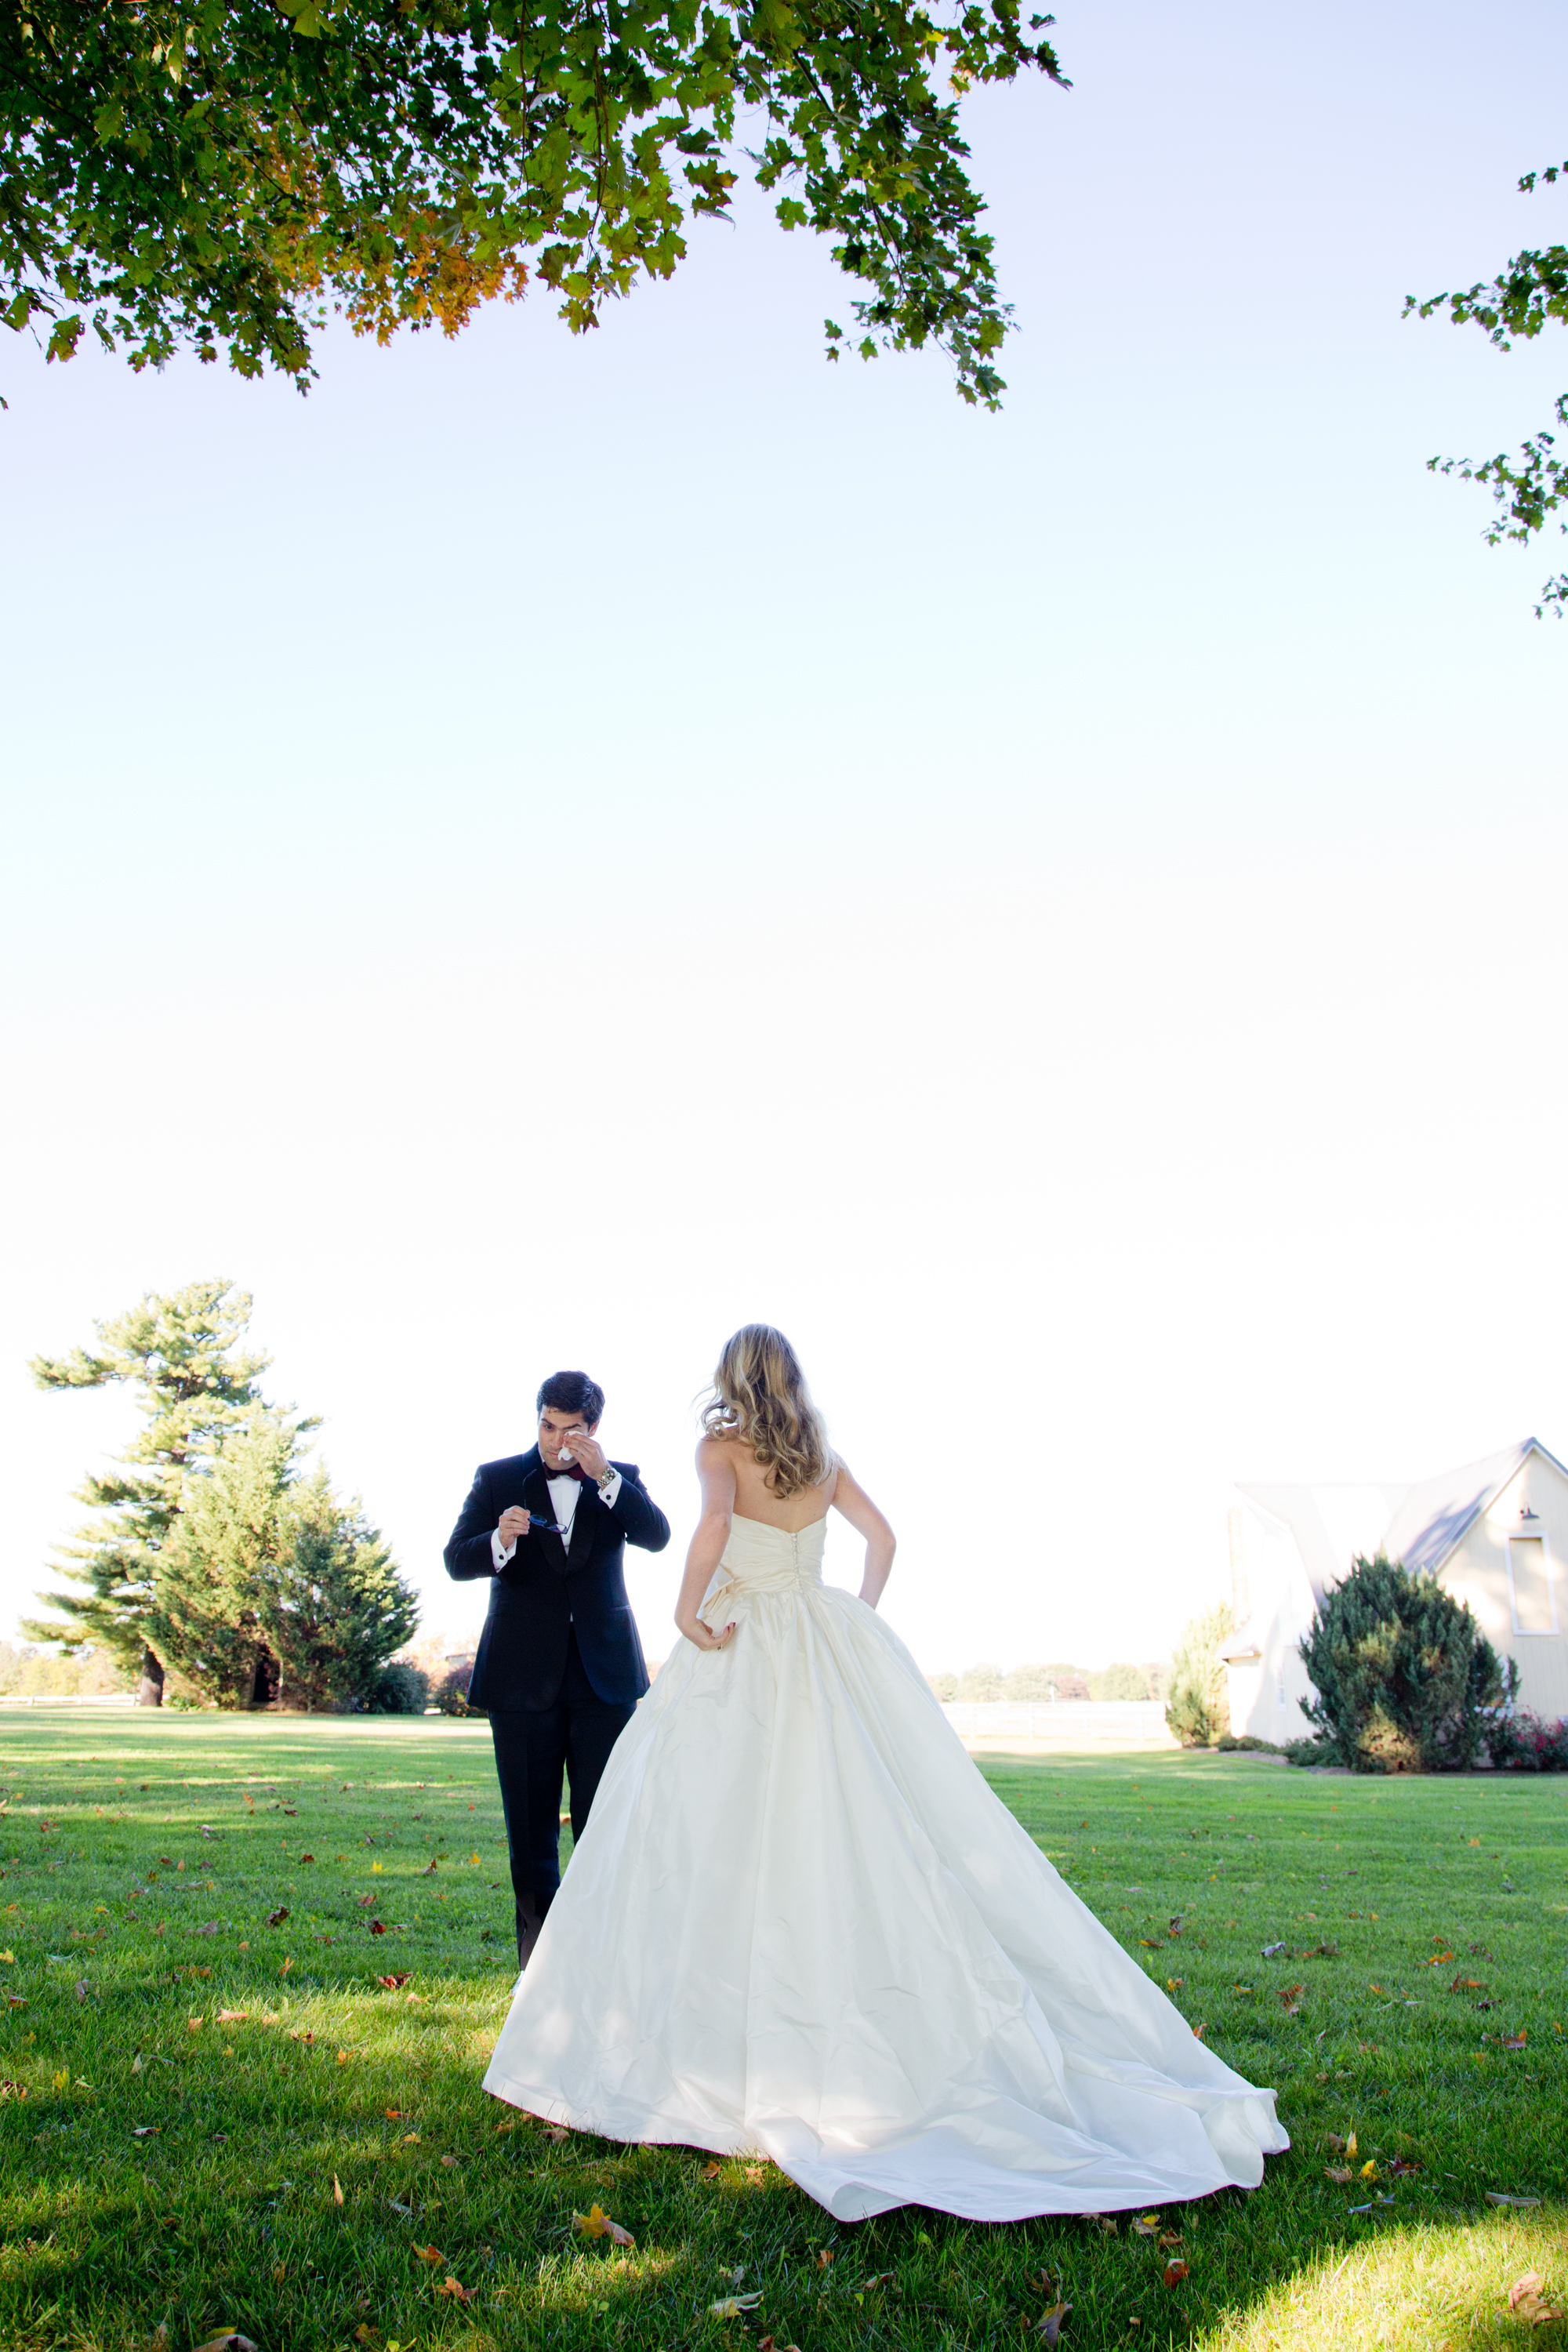 032_CarlyGaebe_SteadfastStudio_WeddingPhotography_Readyluck_Baltimore_Outdoors_HorseFarm_Fall_Bride_Groom_FirstLook.jpg